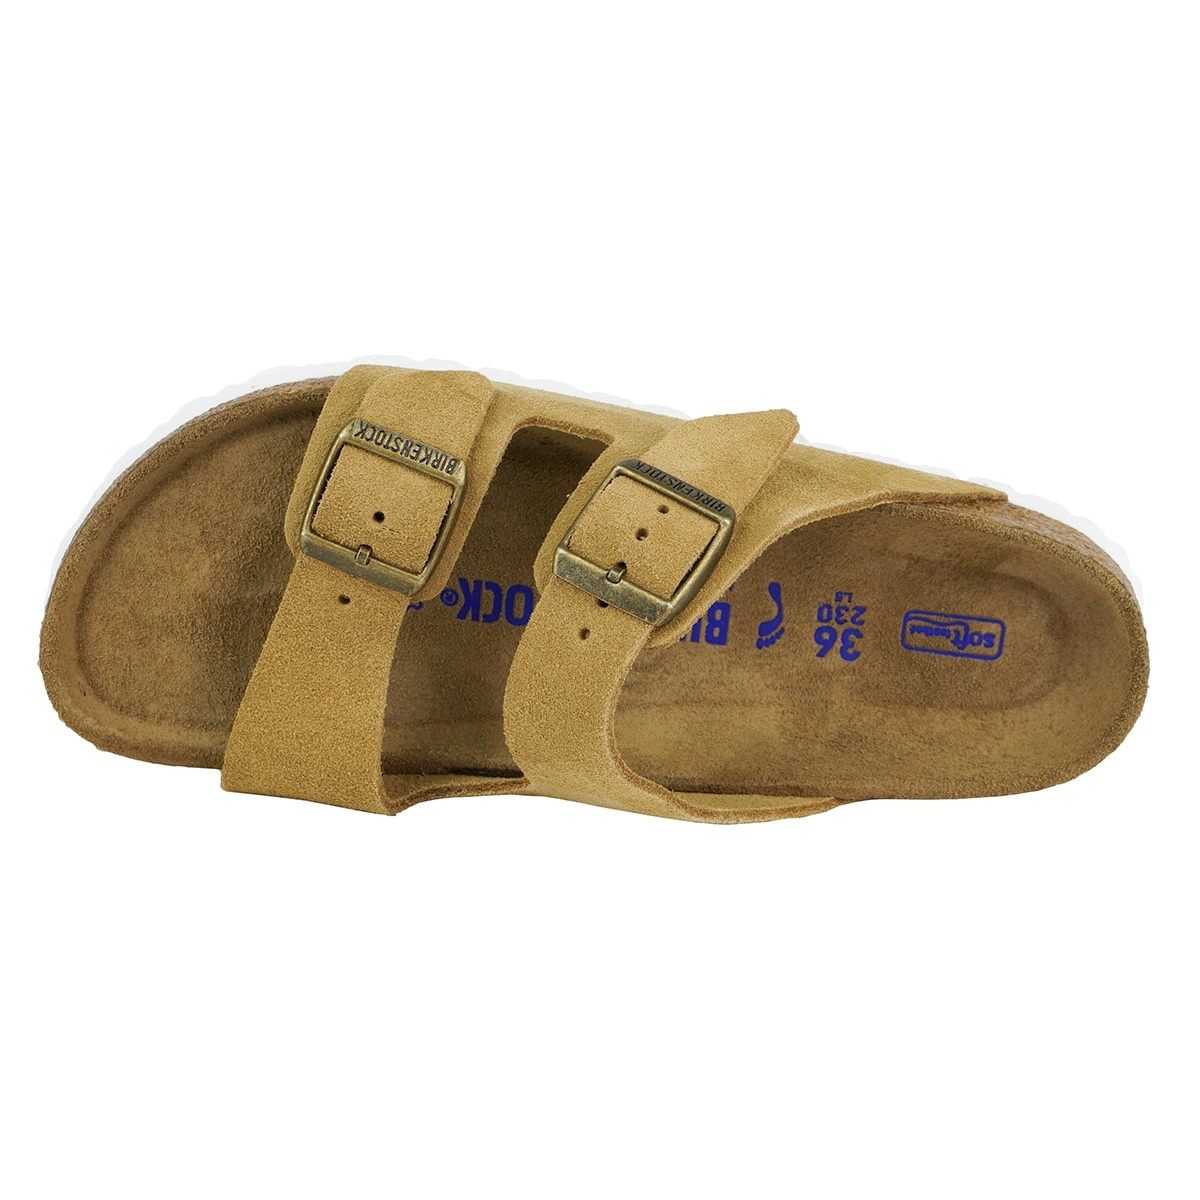 b570036a3782 Shop Birkenstock Arizona Soft Footbed Suede Leather Sandals - On Sale -  Free Shipping Today - Overstock - 23467289